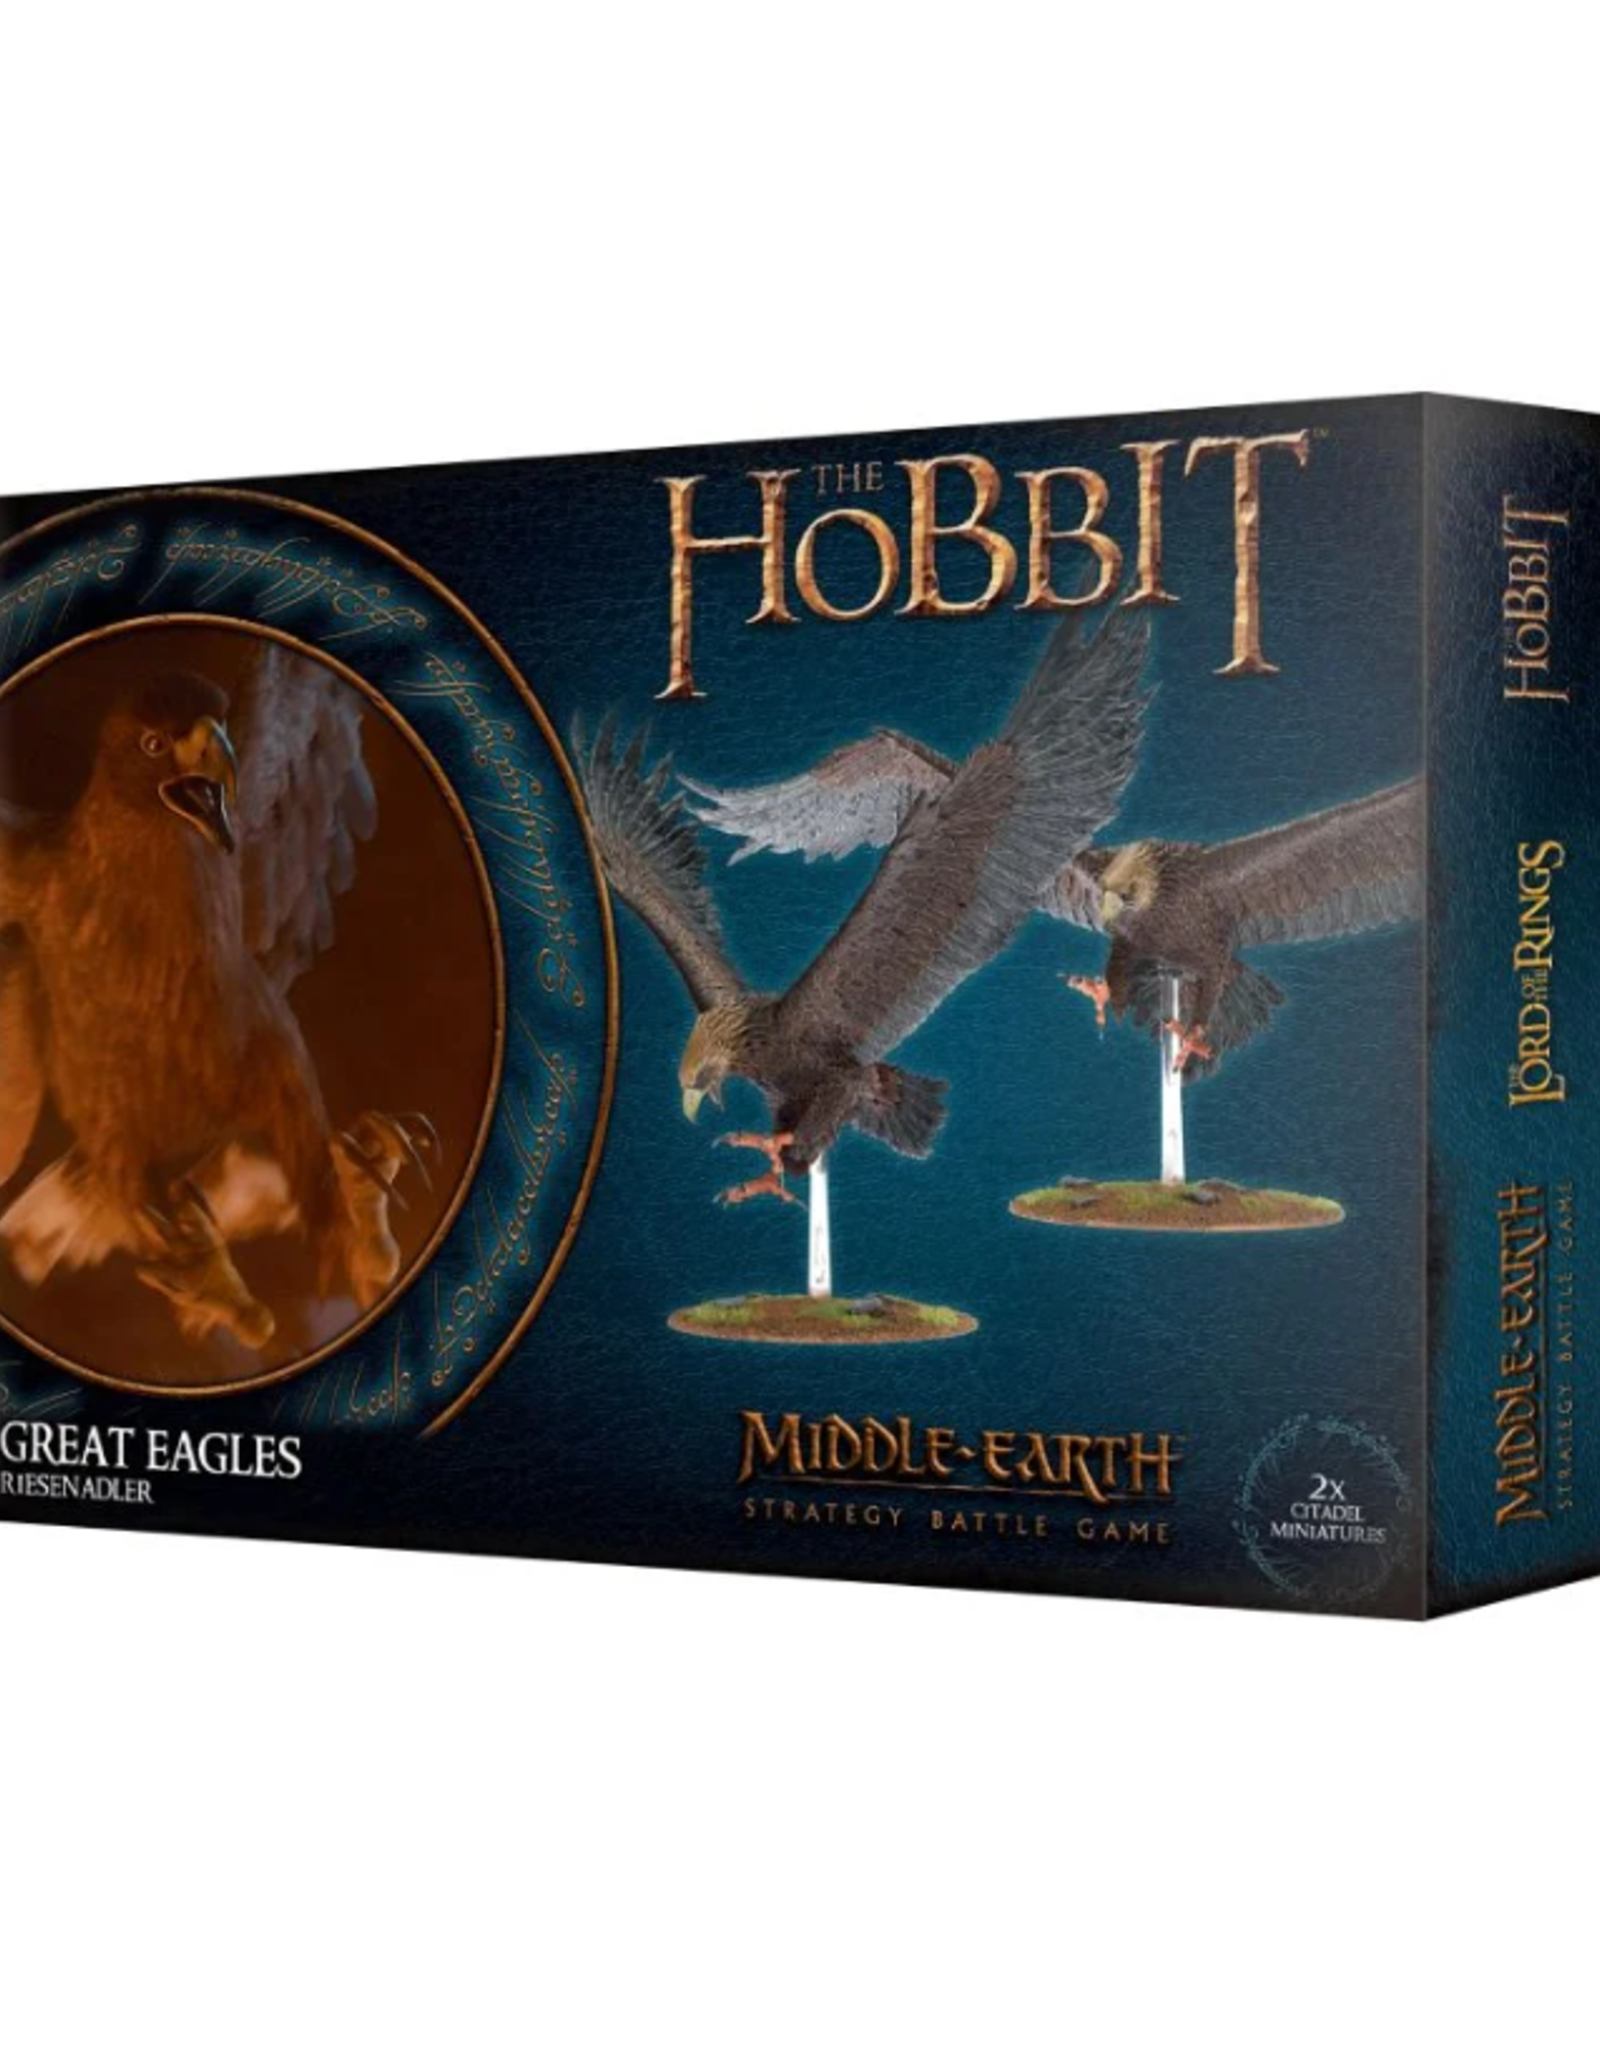 Games Workshop The Hobbit: Great Eagles